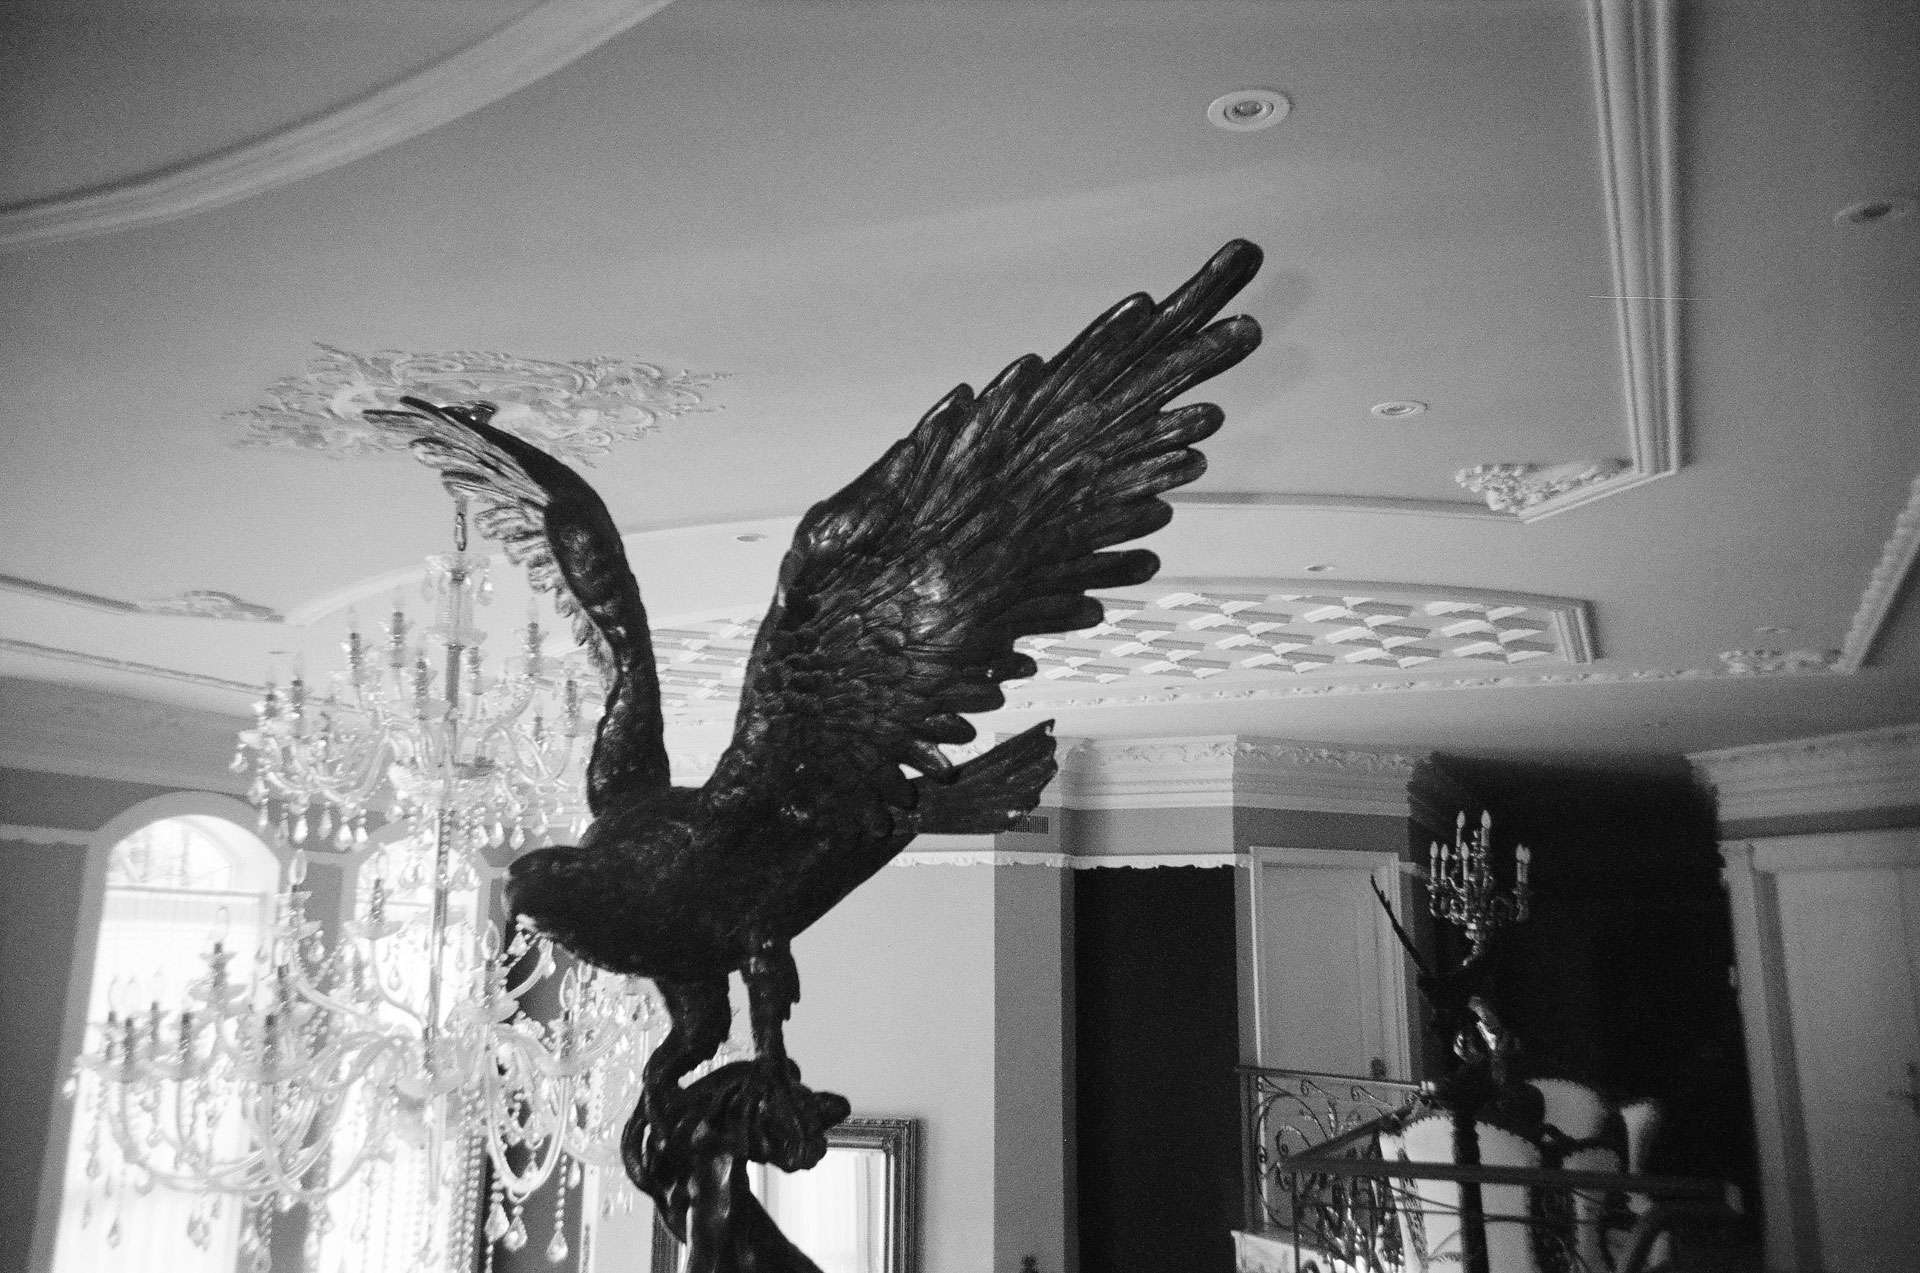 statue of an eagle taking flight in a luxurious villa for rapper Souldia music video Rouge Neige filmed by Les Gamins featuring Sinik, Seth Gueko and Rick Pagano